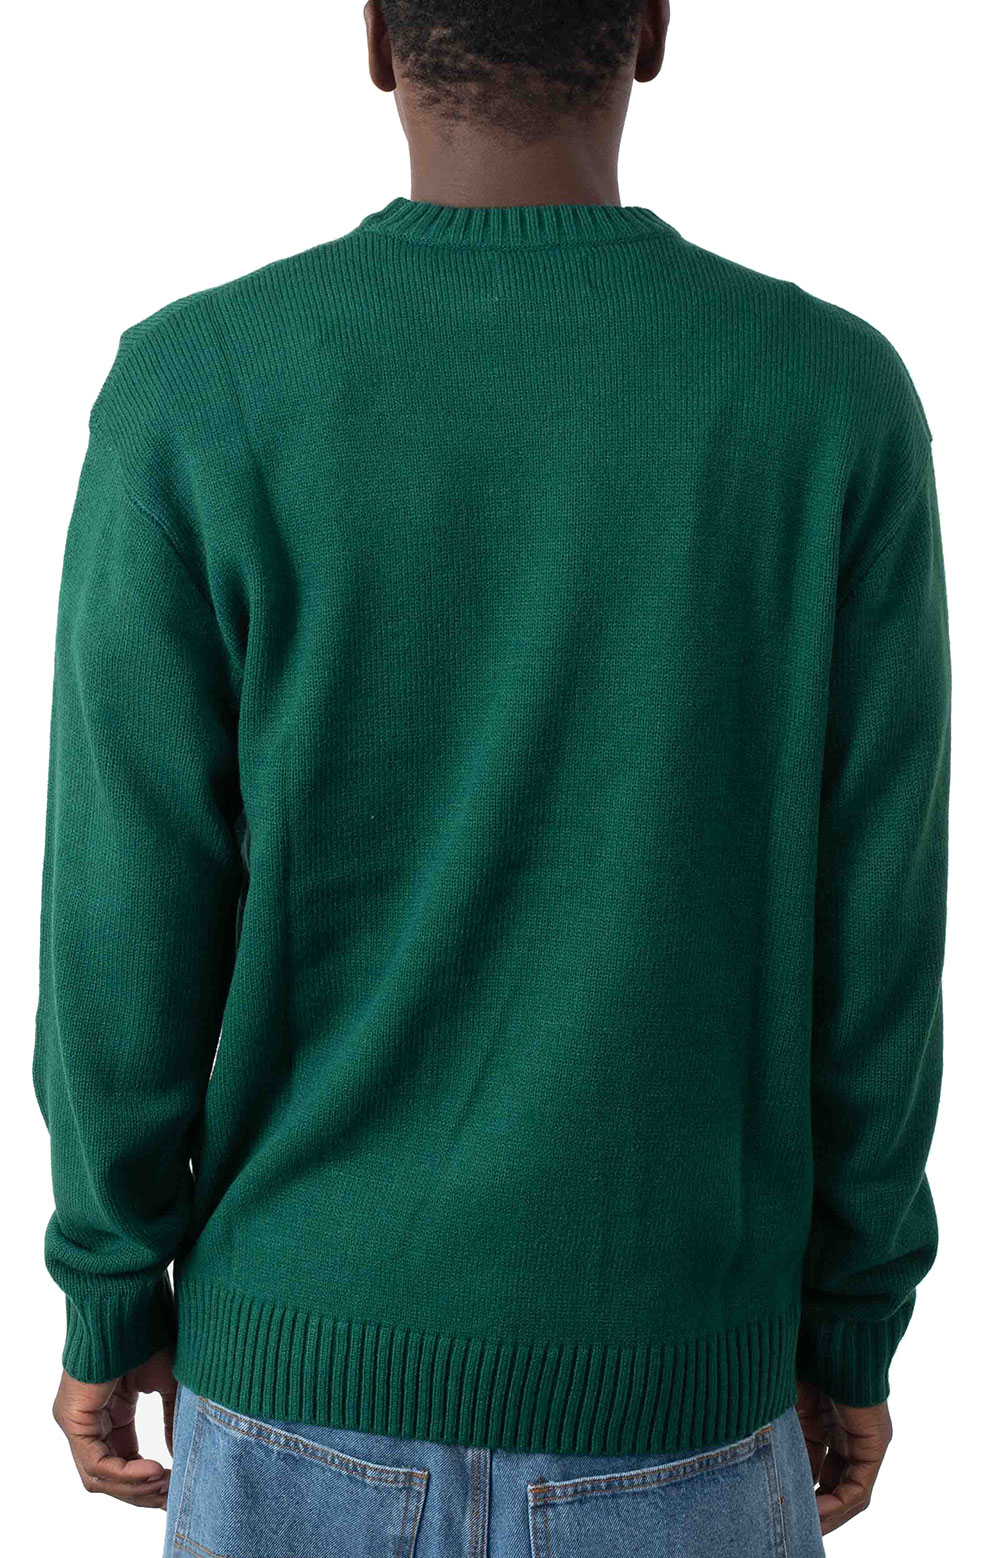 Apple Knit Sweater - Forest Green  3